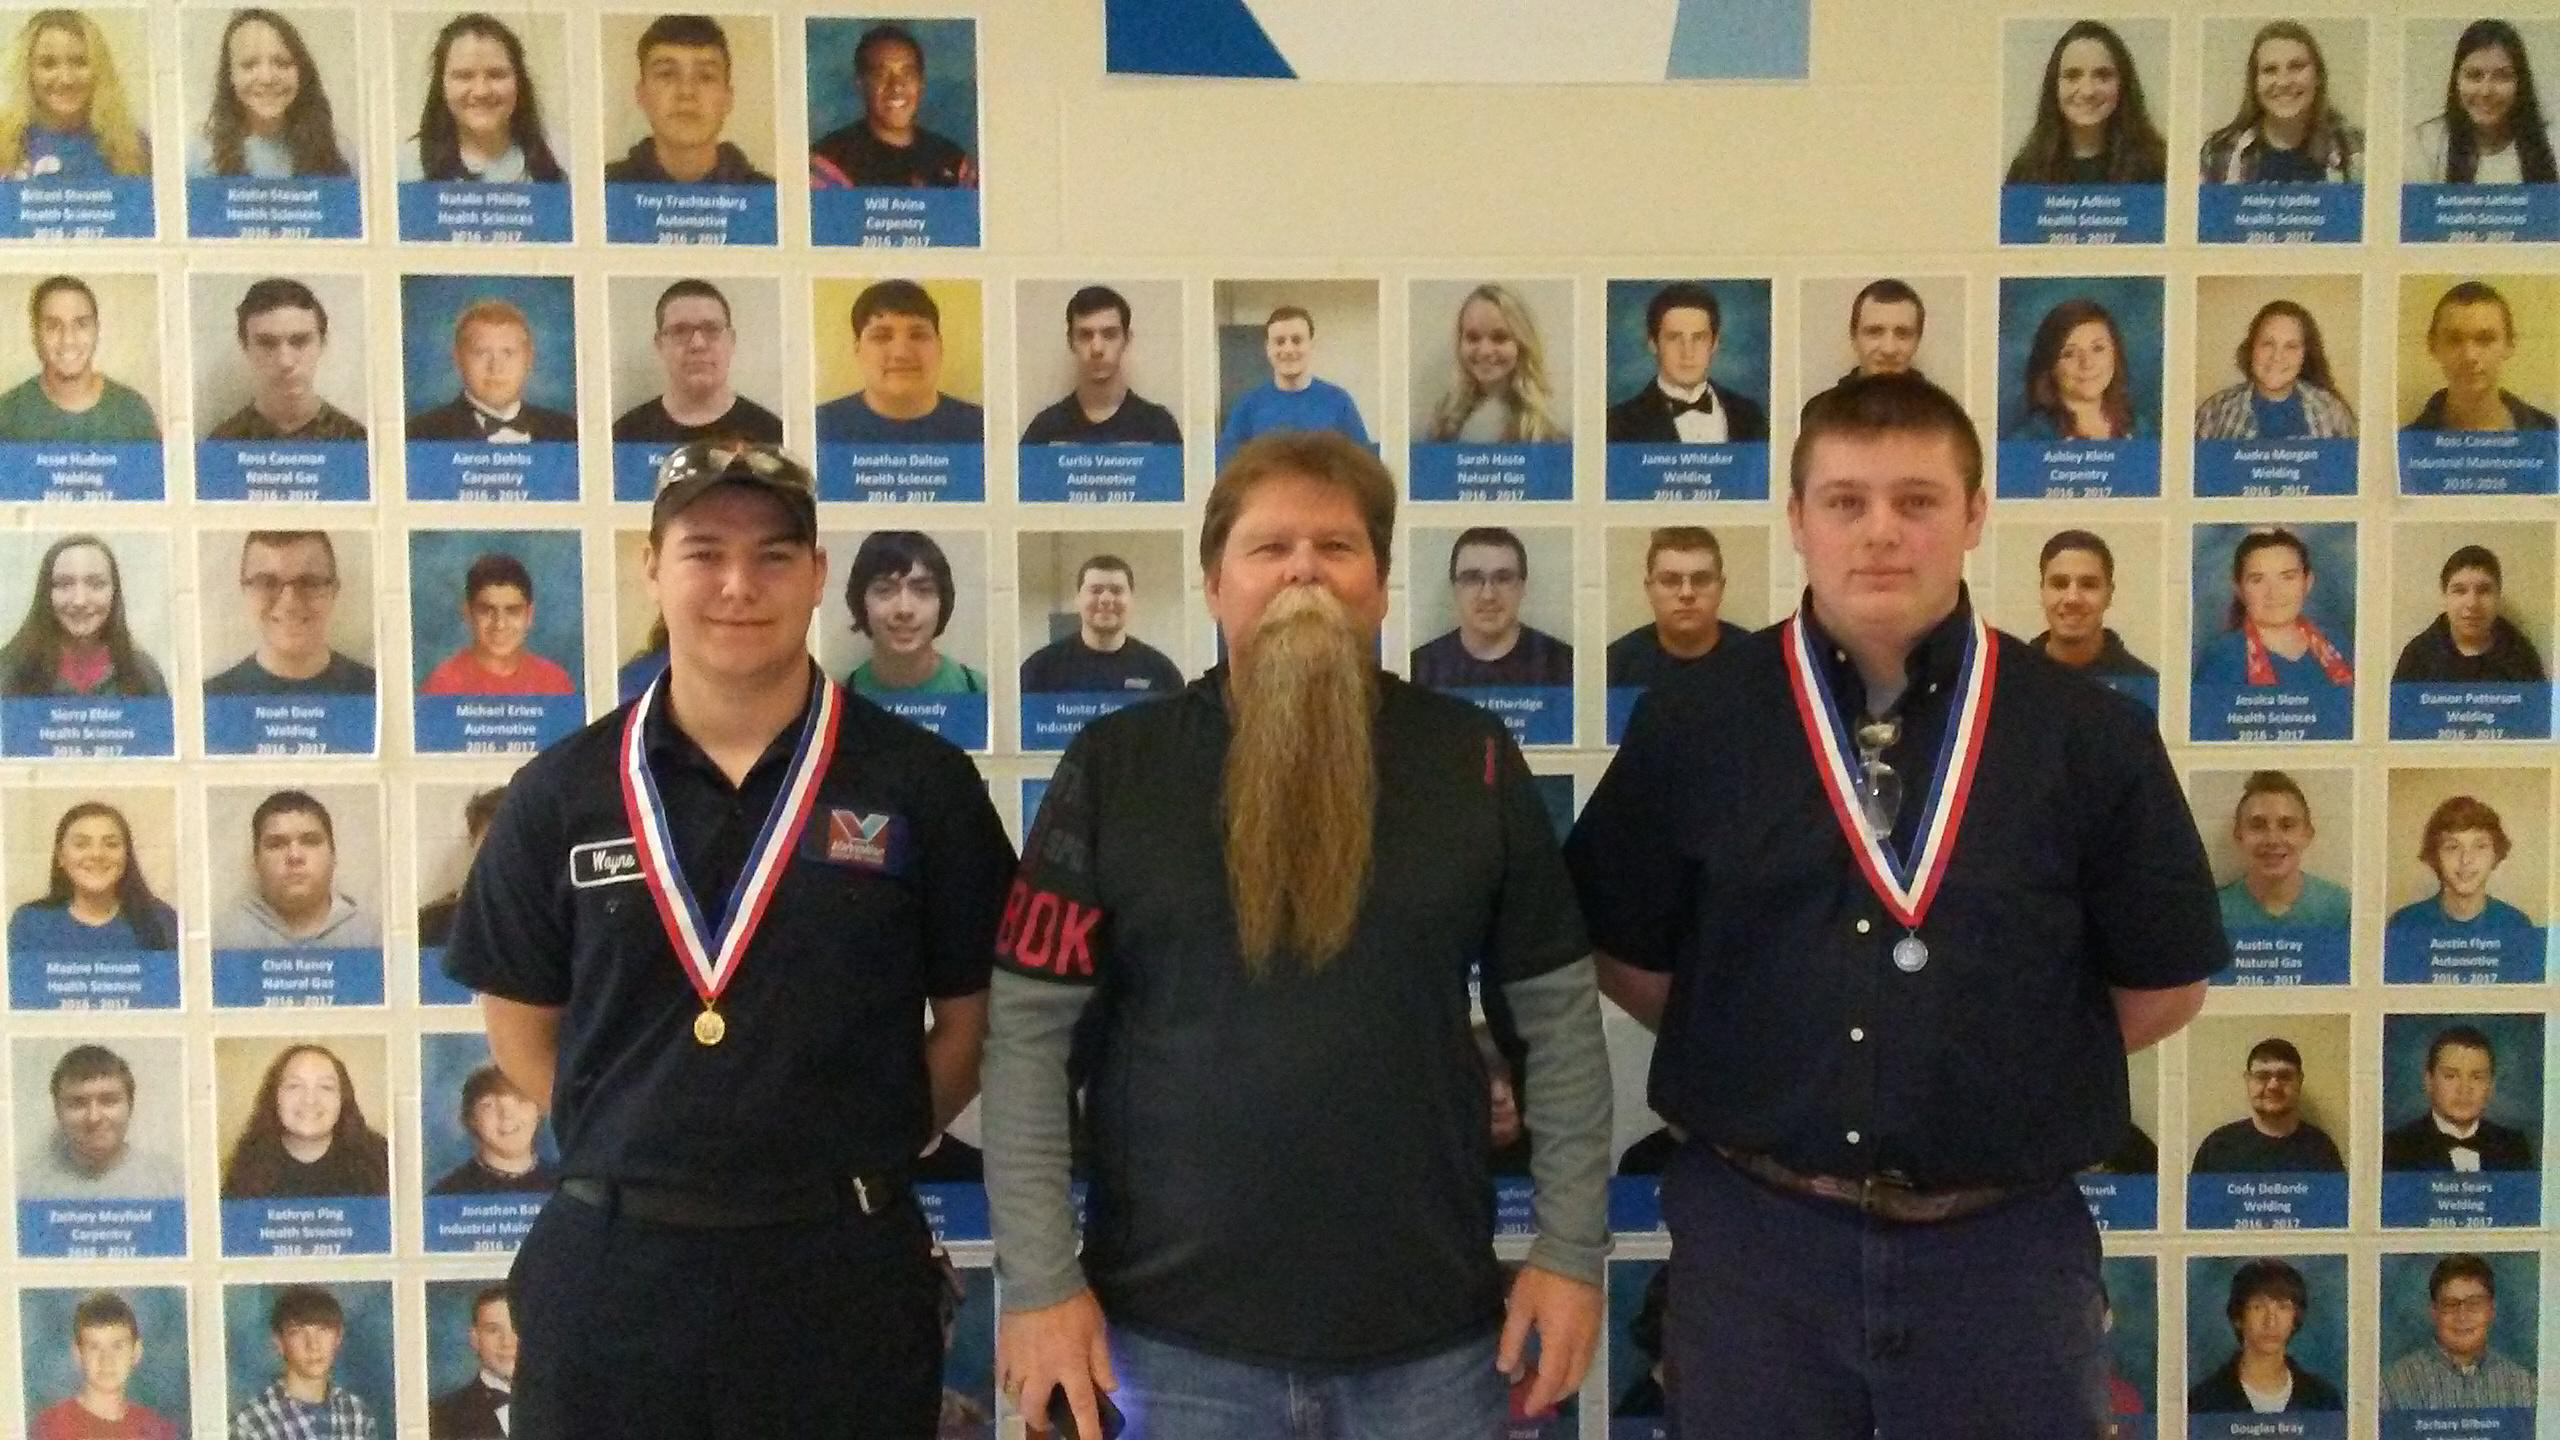 (l-r): Wayne Tucker, Marke Burke, and Arin Pittman; the two students competed in the Automotive Service Technology